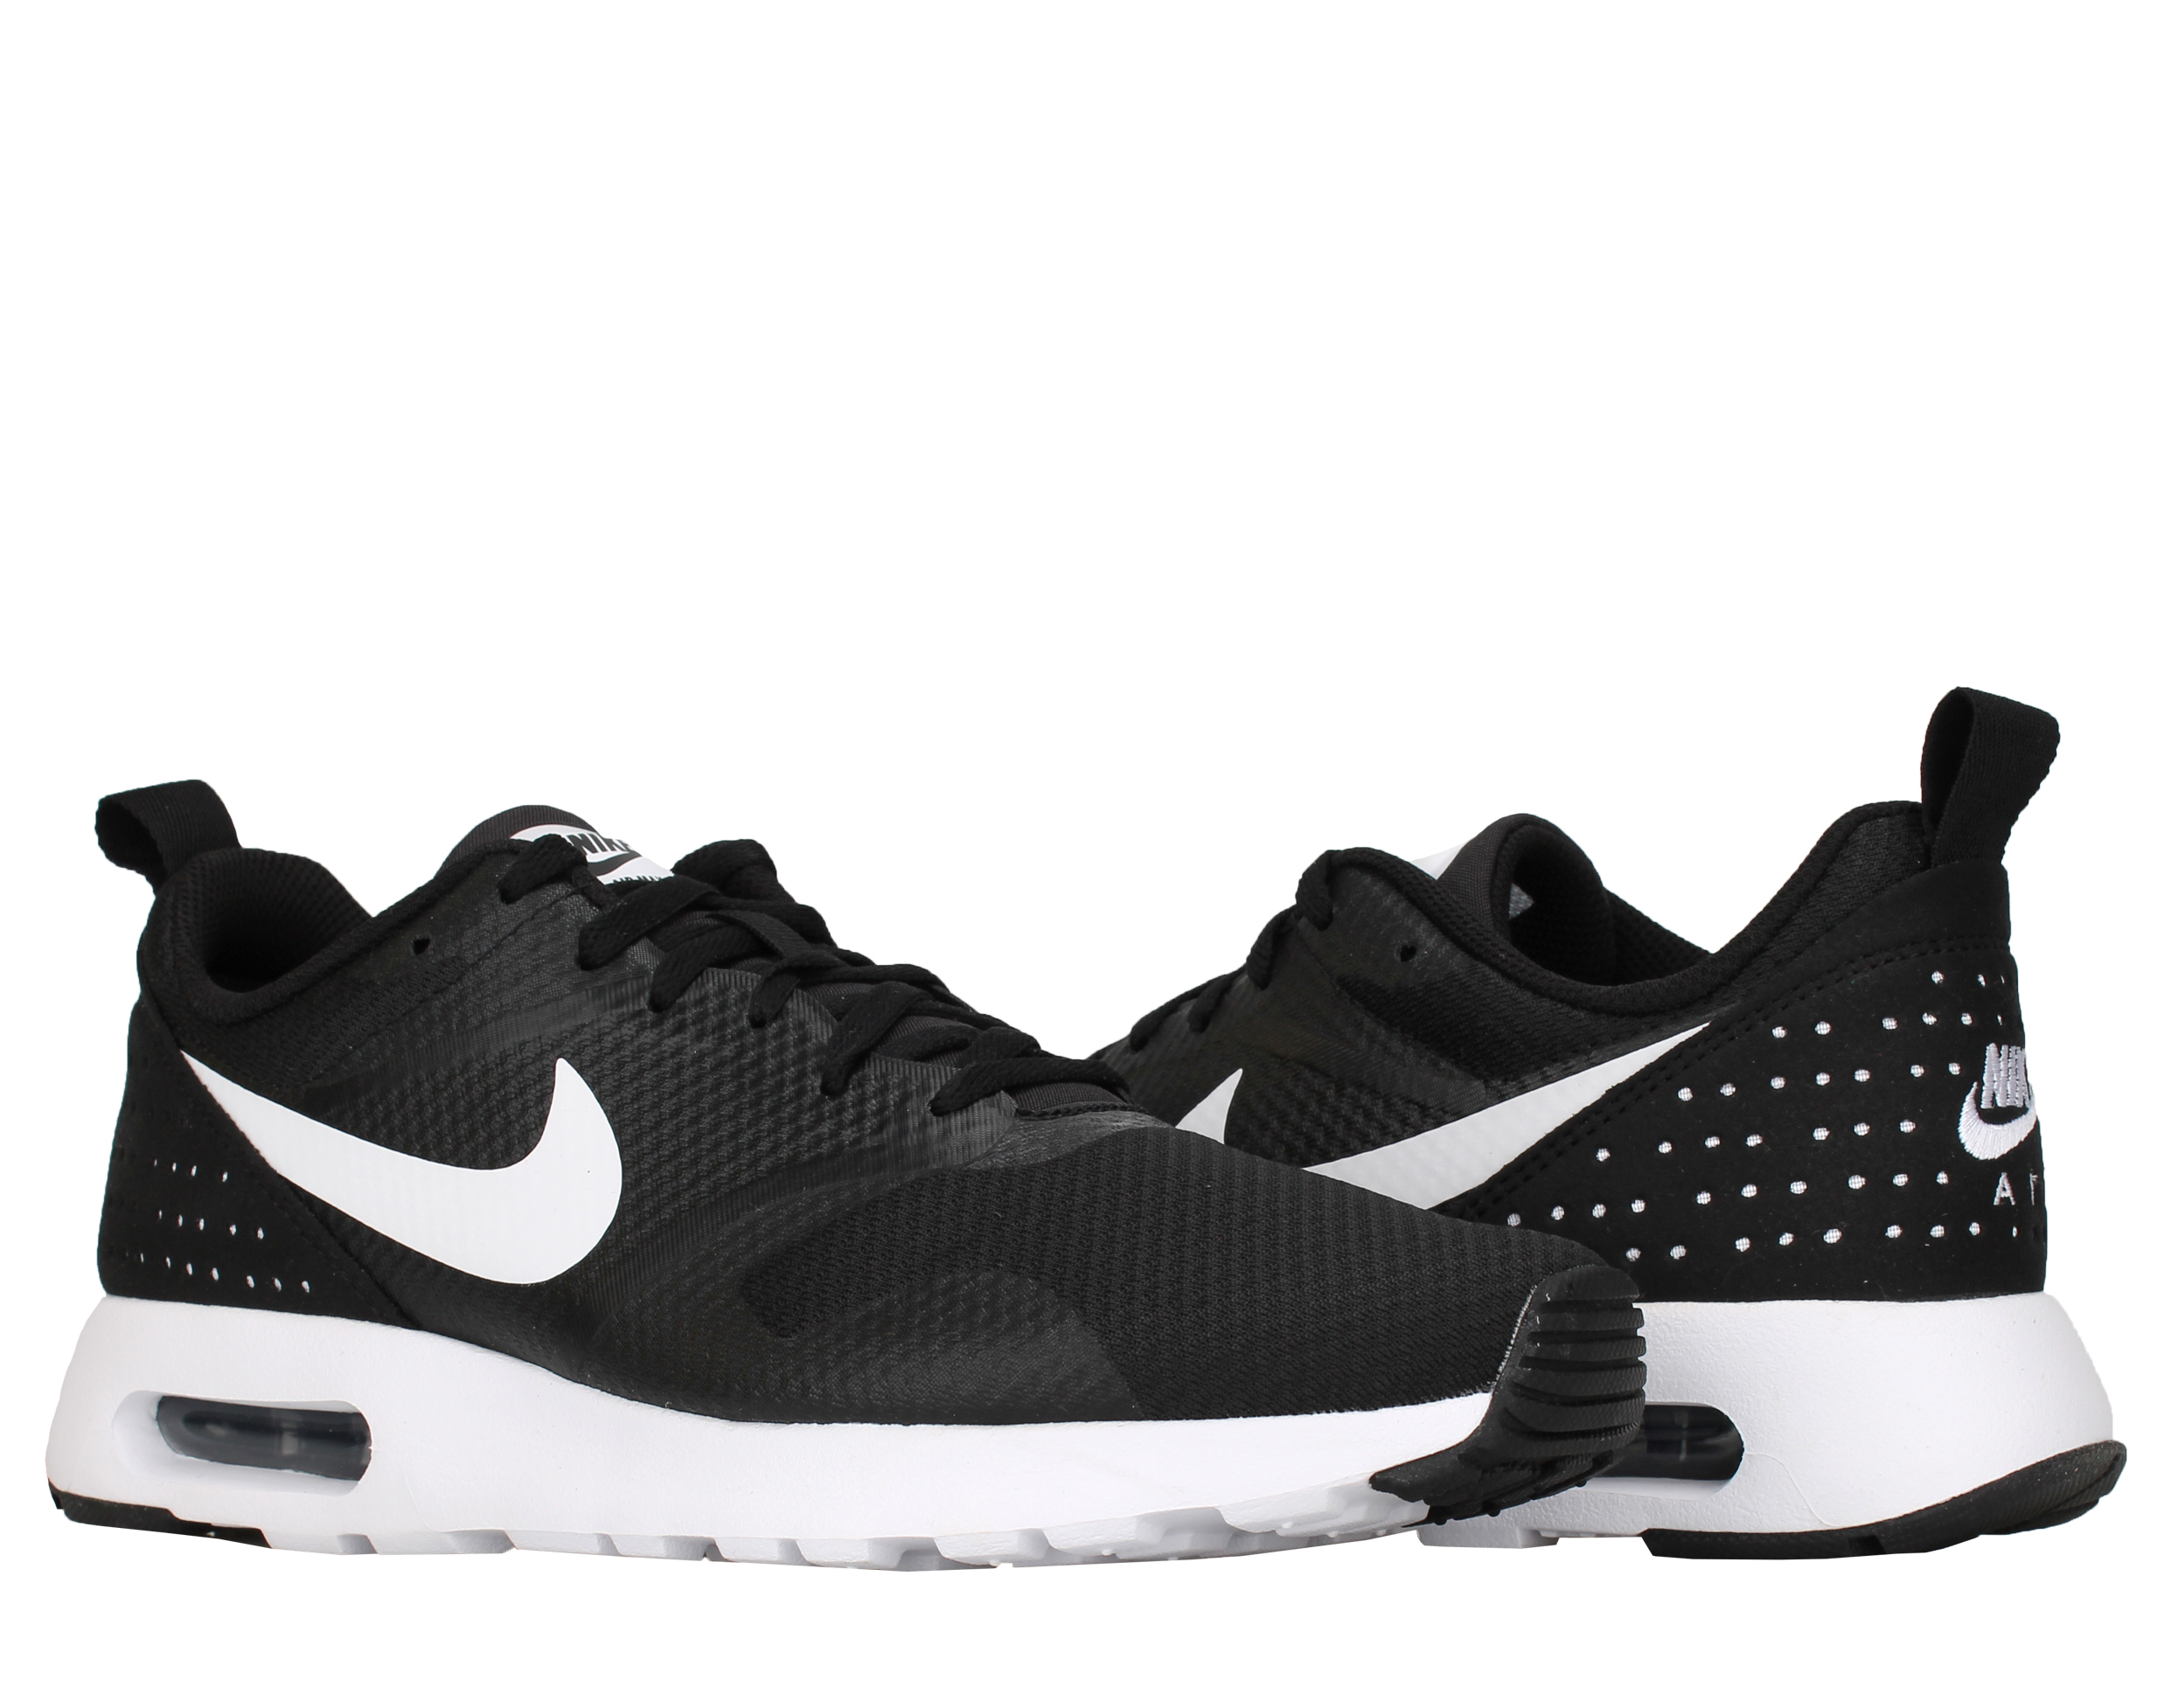 Nike Men's AIR MAX TAVAS Running Shoes Black/White 705149-009 b